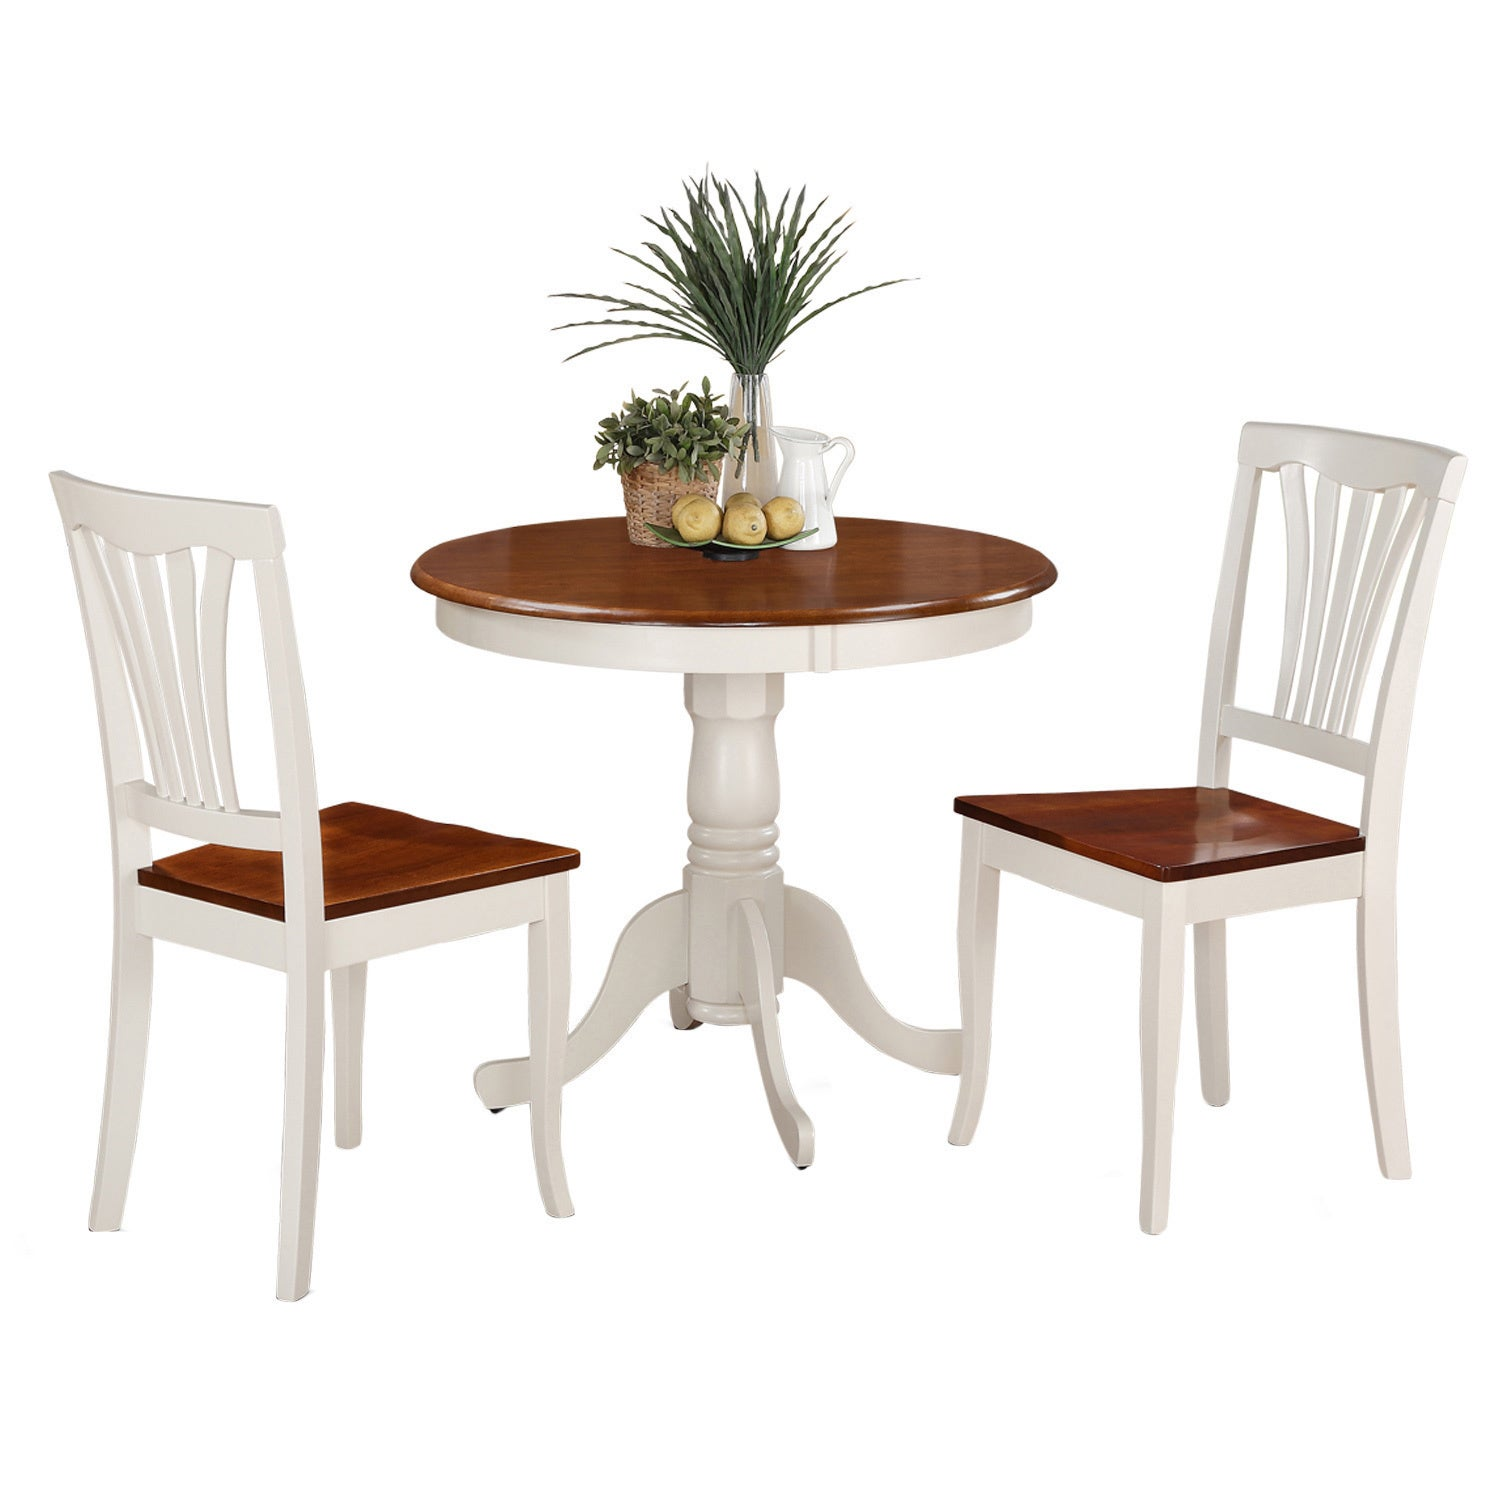 Genial Shop 3 Piece Kitchen Nook Dining Set Small Kitchen Table And 2 Kitchen  Chairs   Free Shipping Today   Overstock.com   10200001